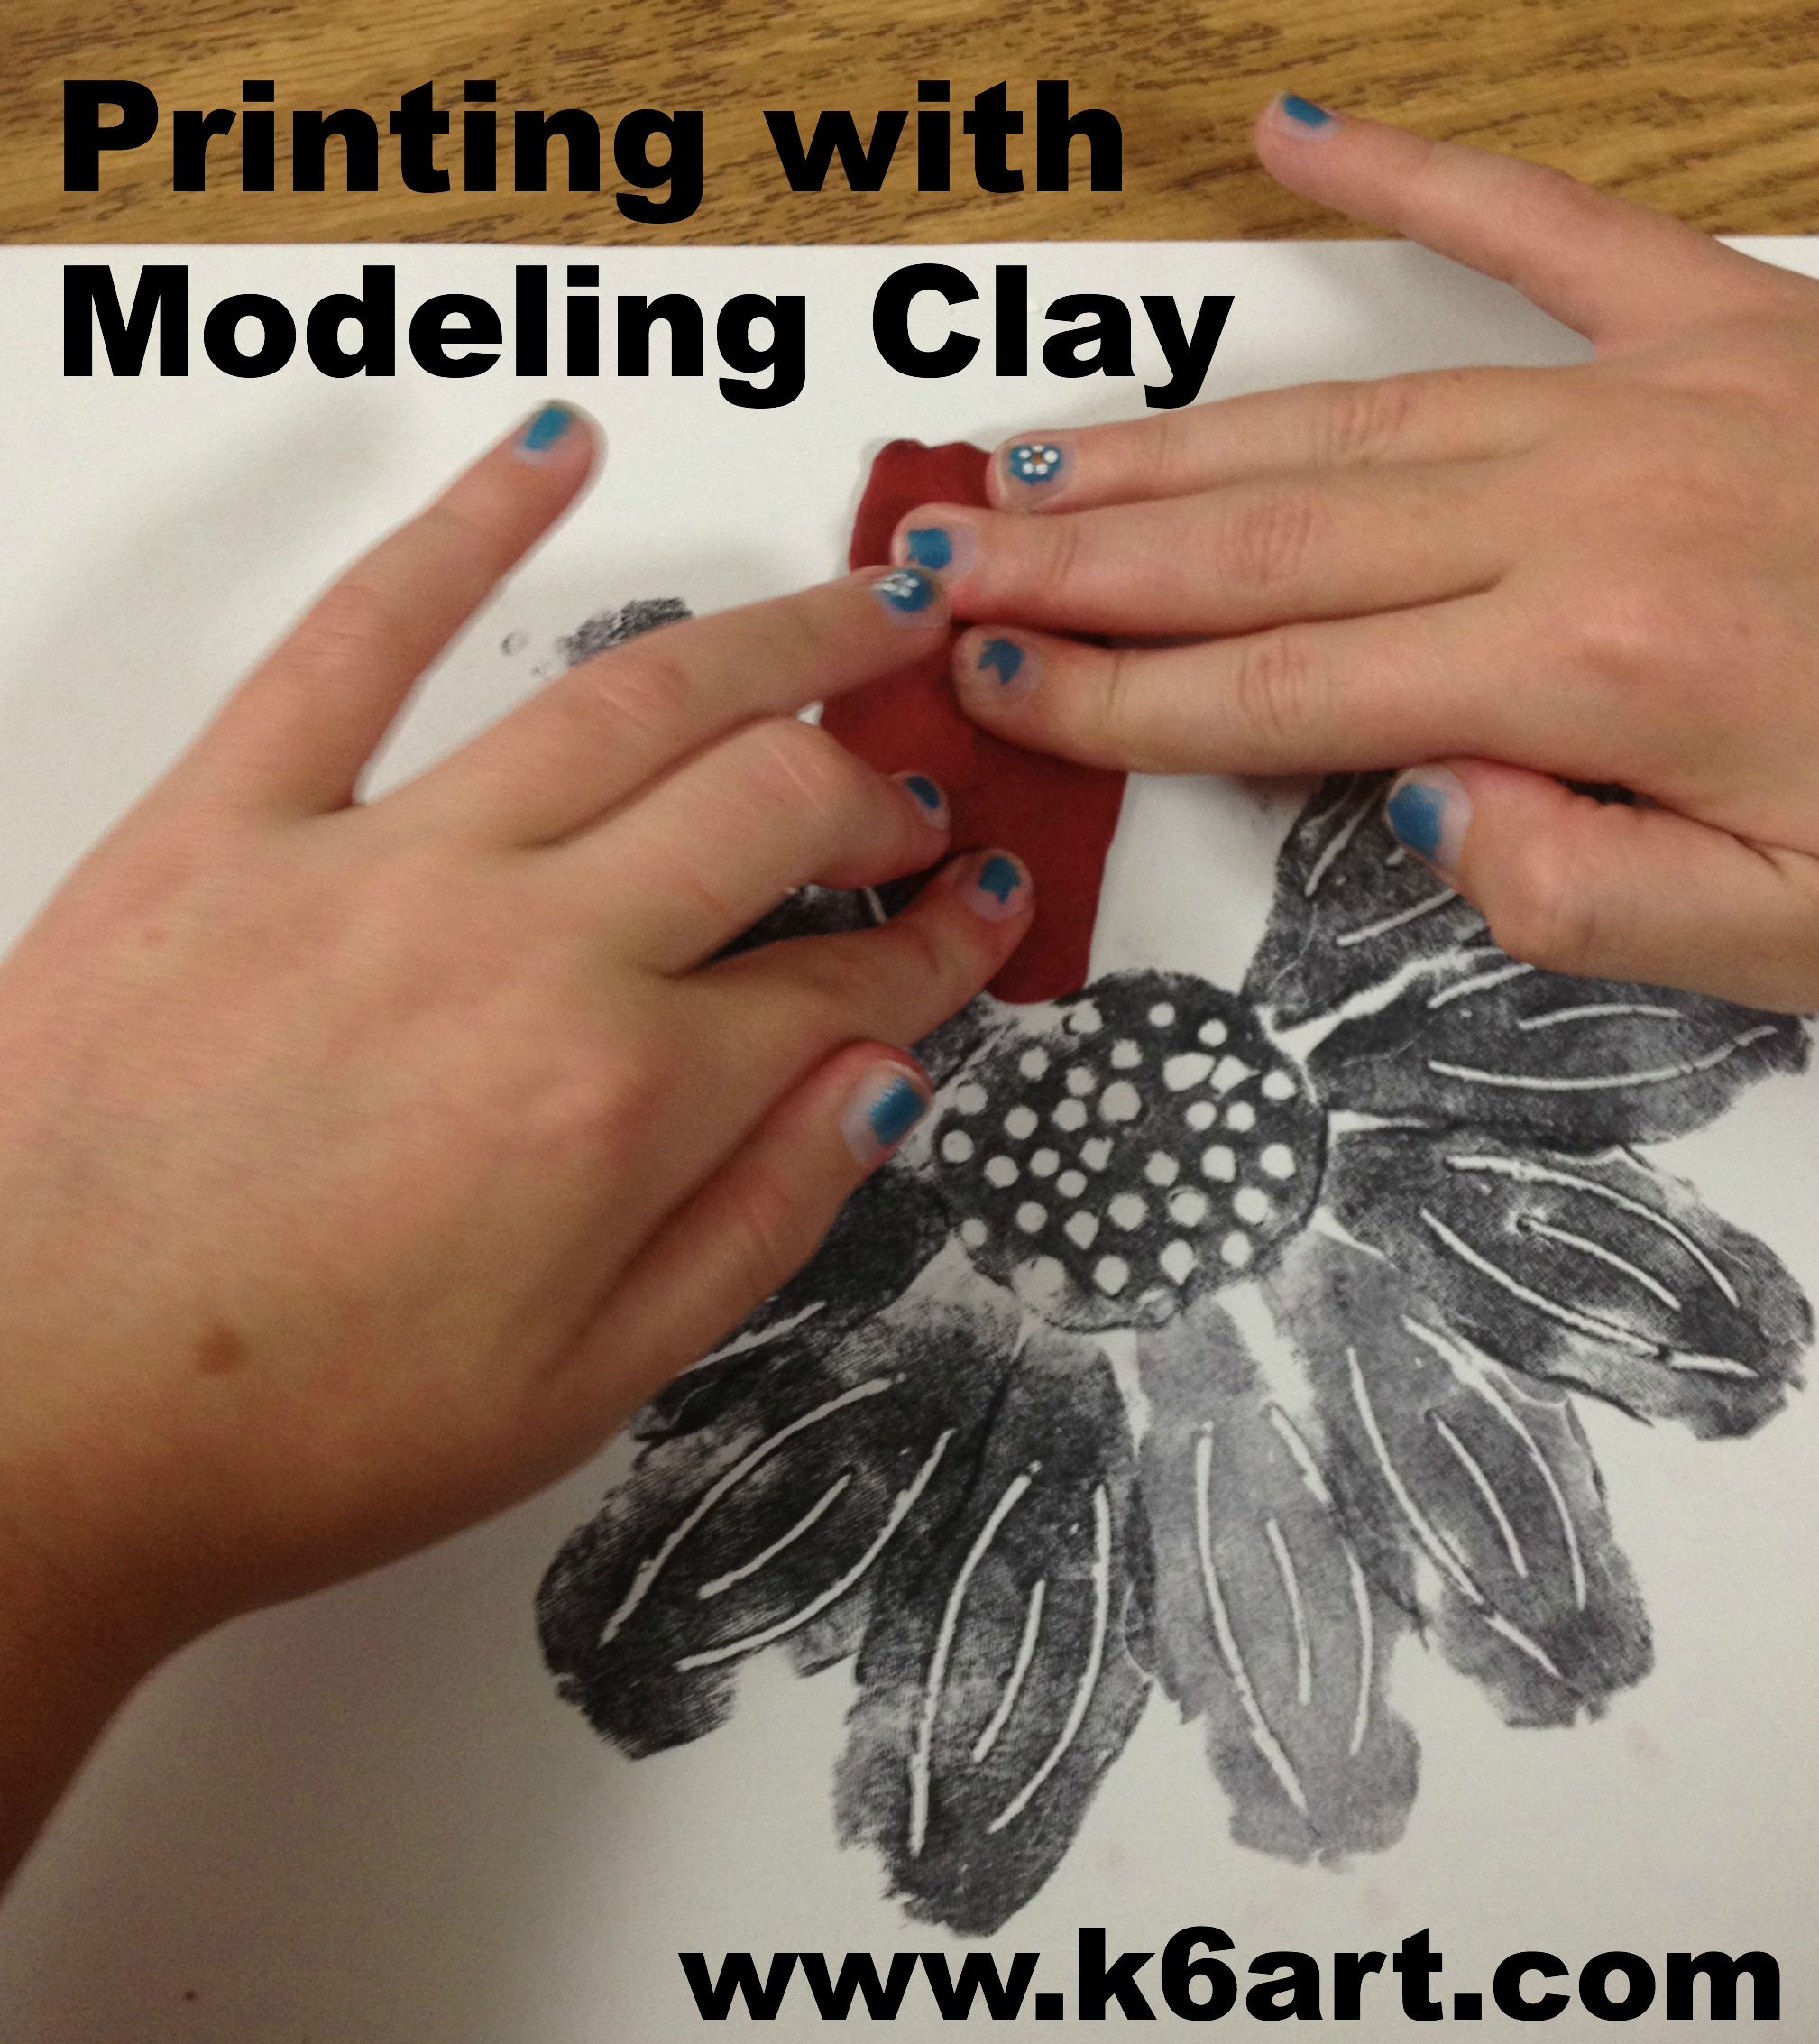 Printing with Modeling Clay